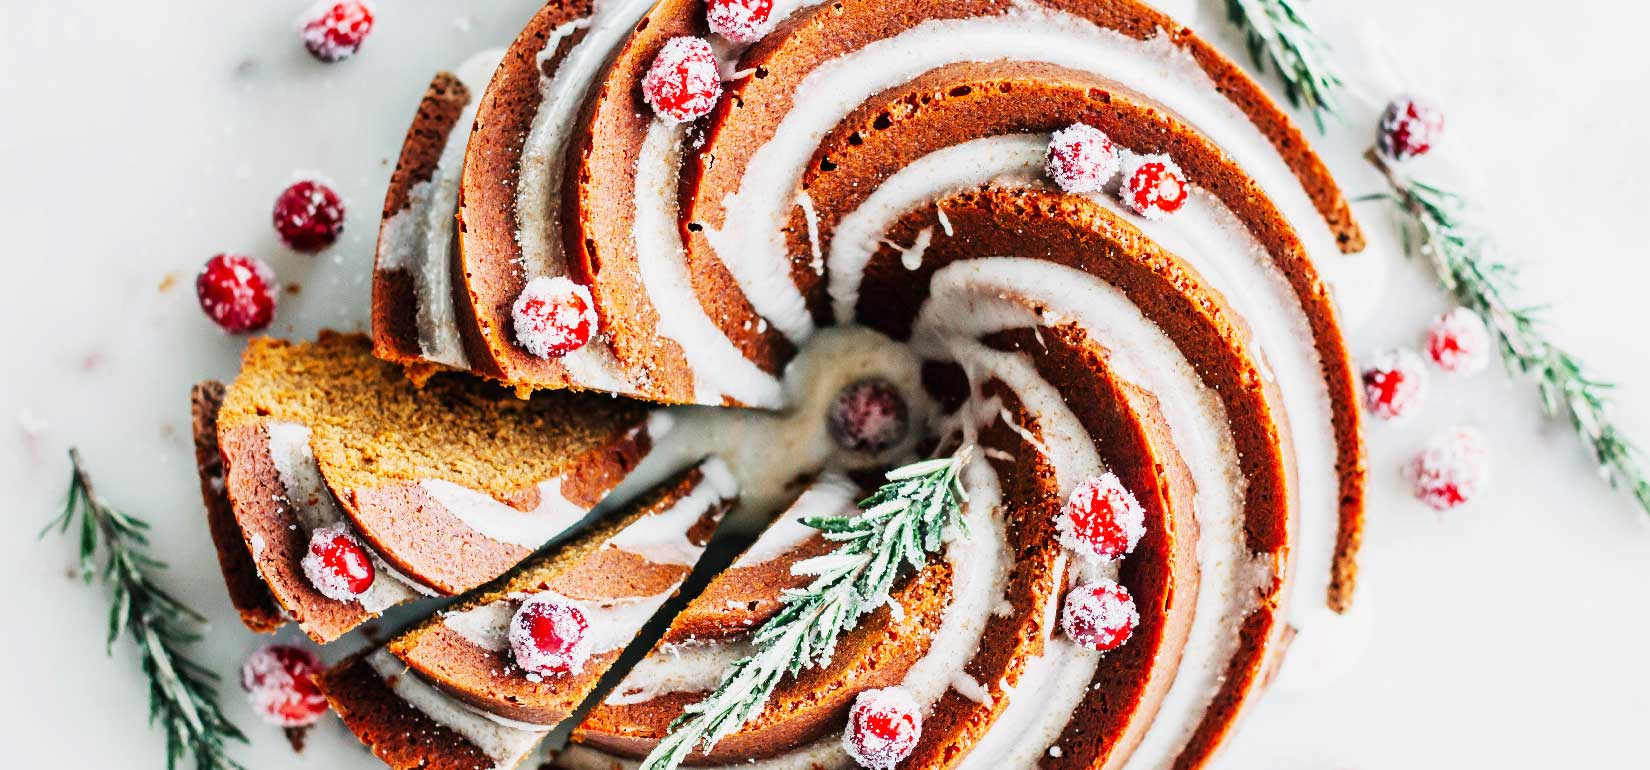 Gingerbread Bundt Cake with Ginger and Cinnamon Glaze